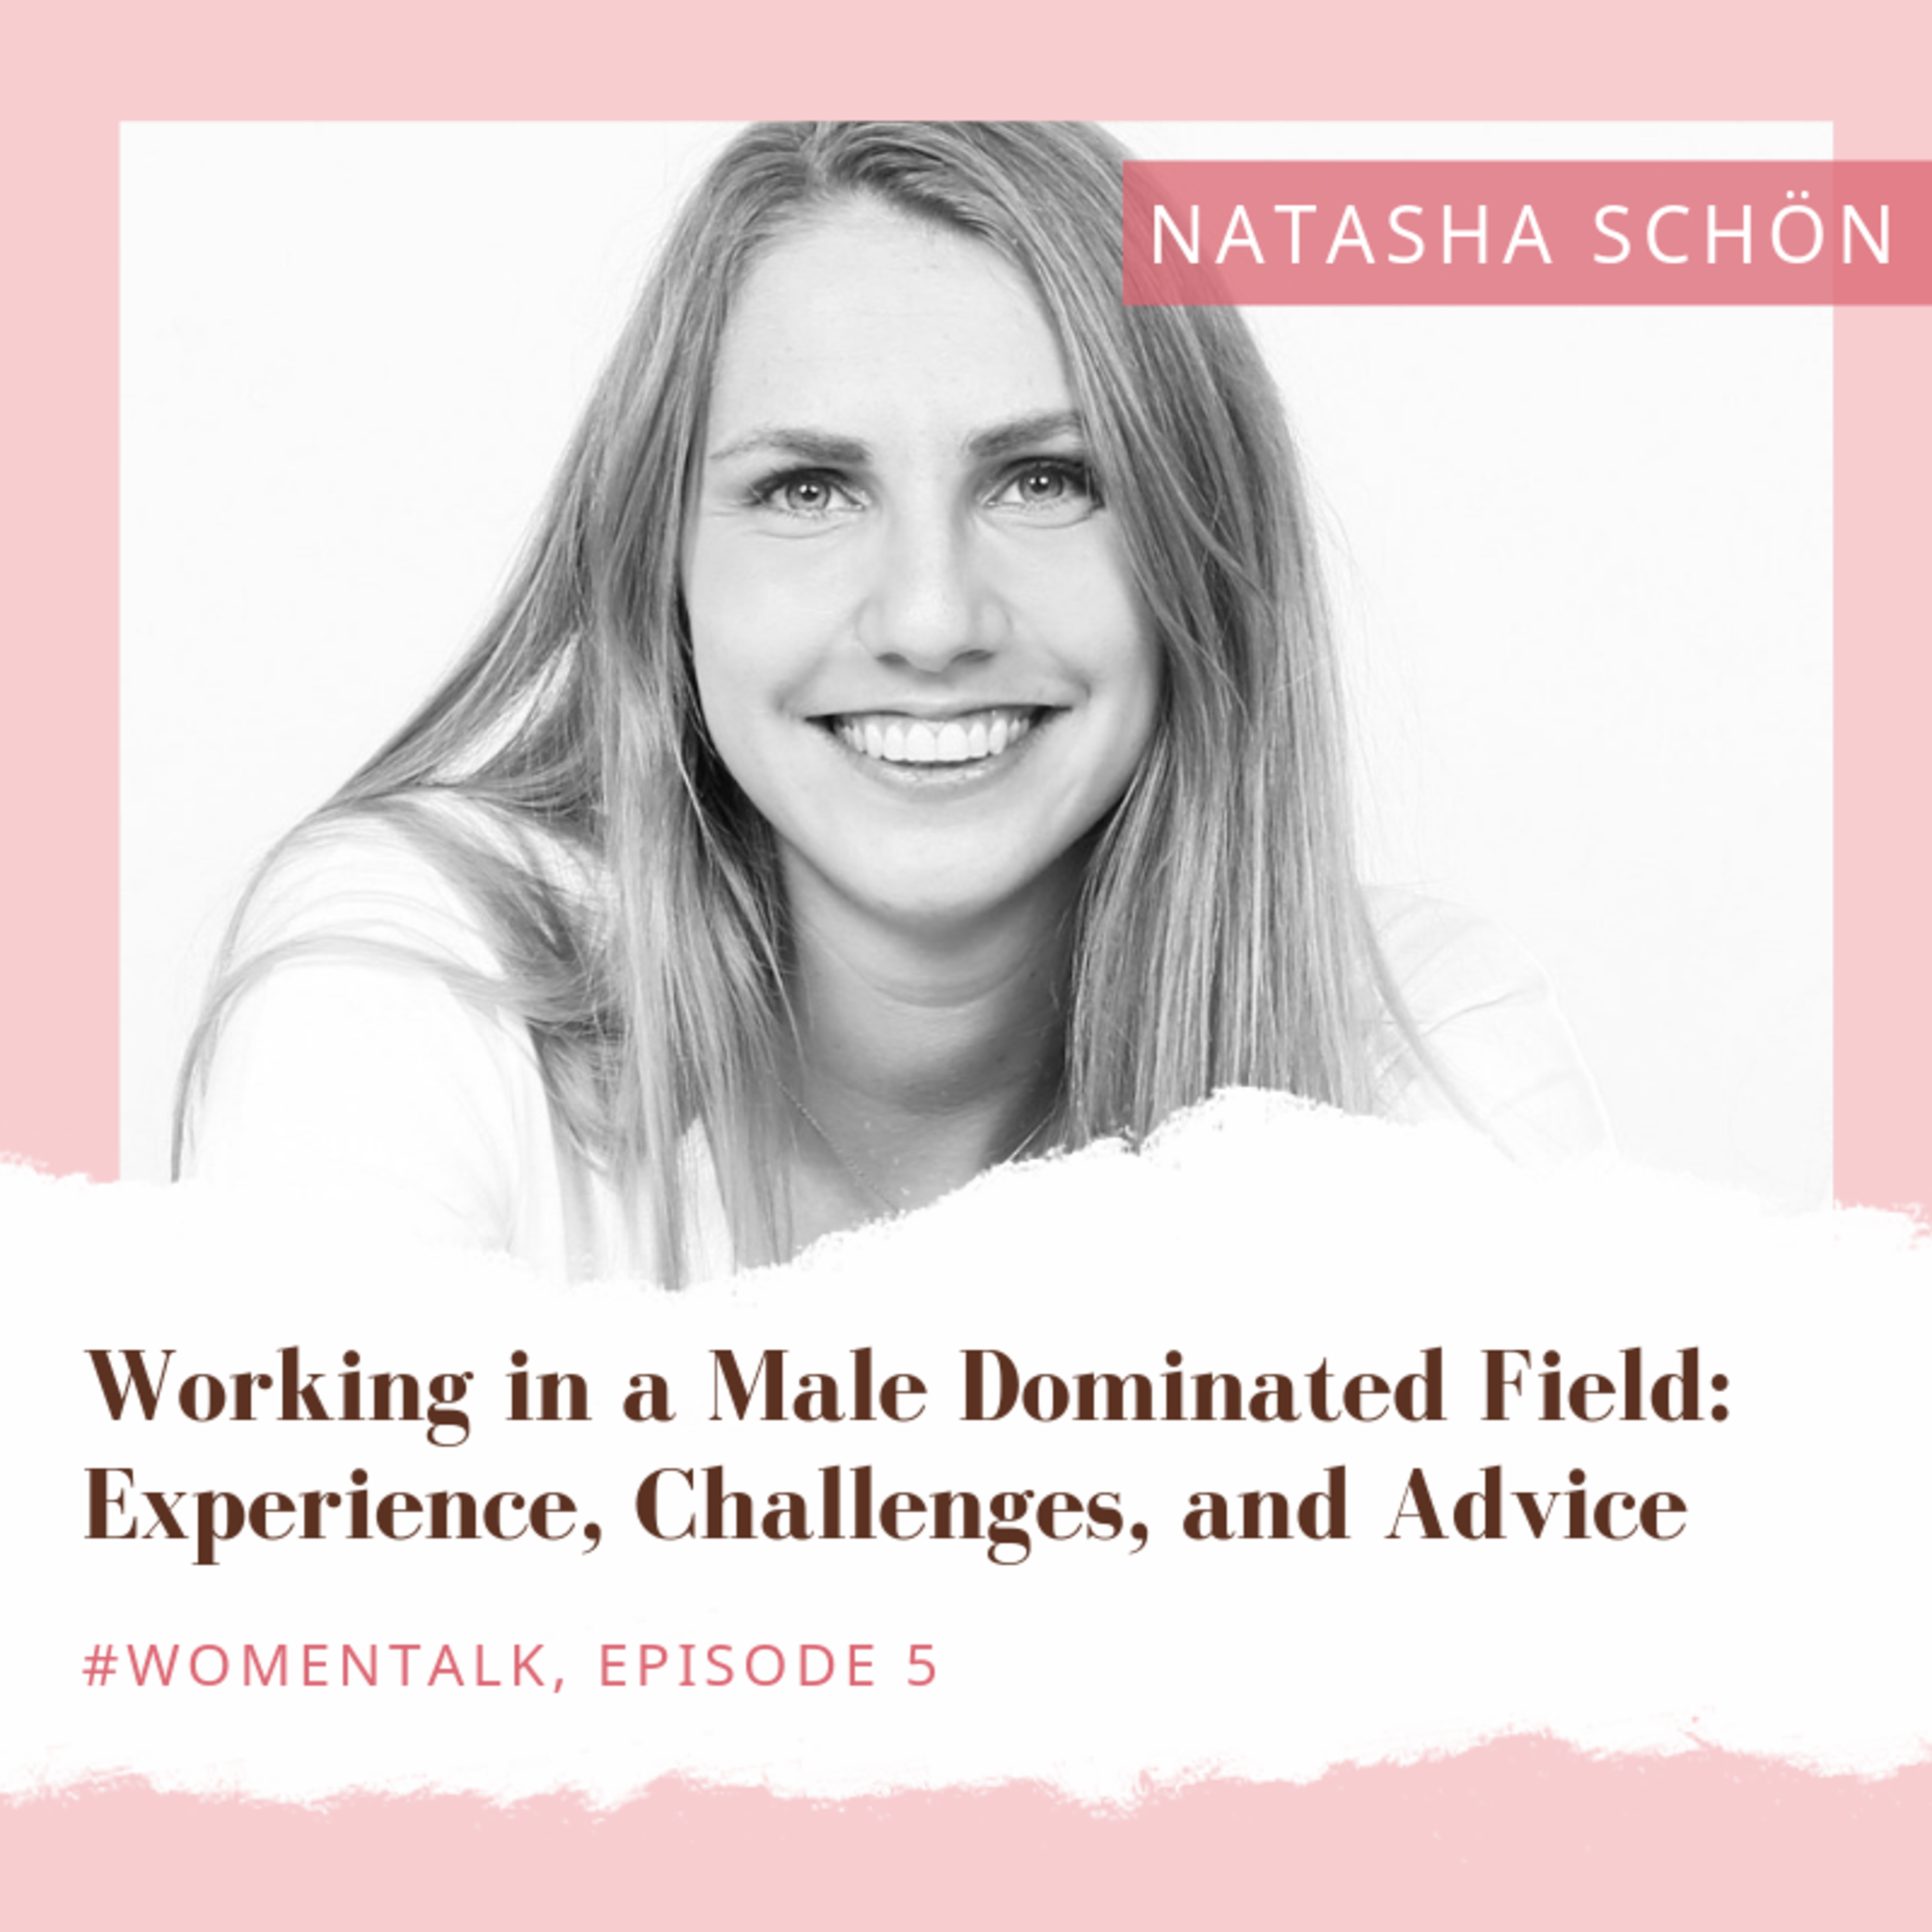 Working in a Male Dominated Field: Experience, Challenges, and Advice